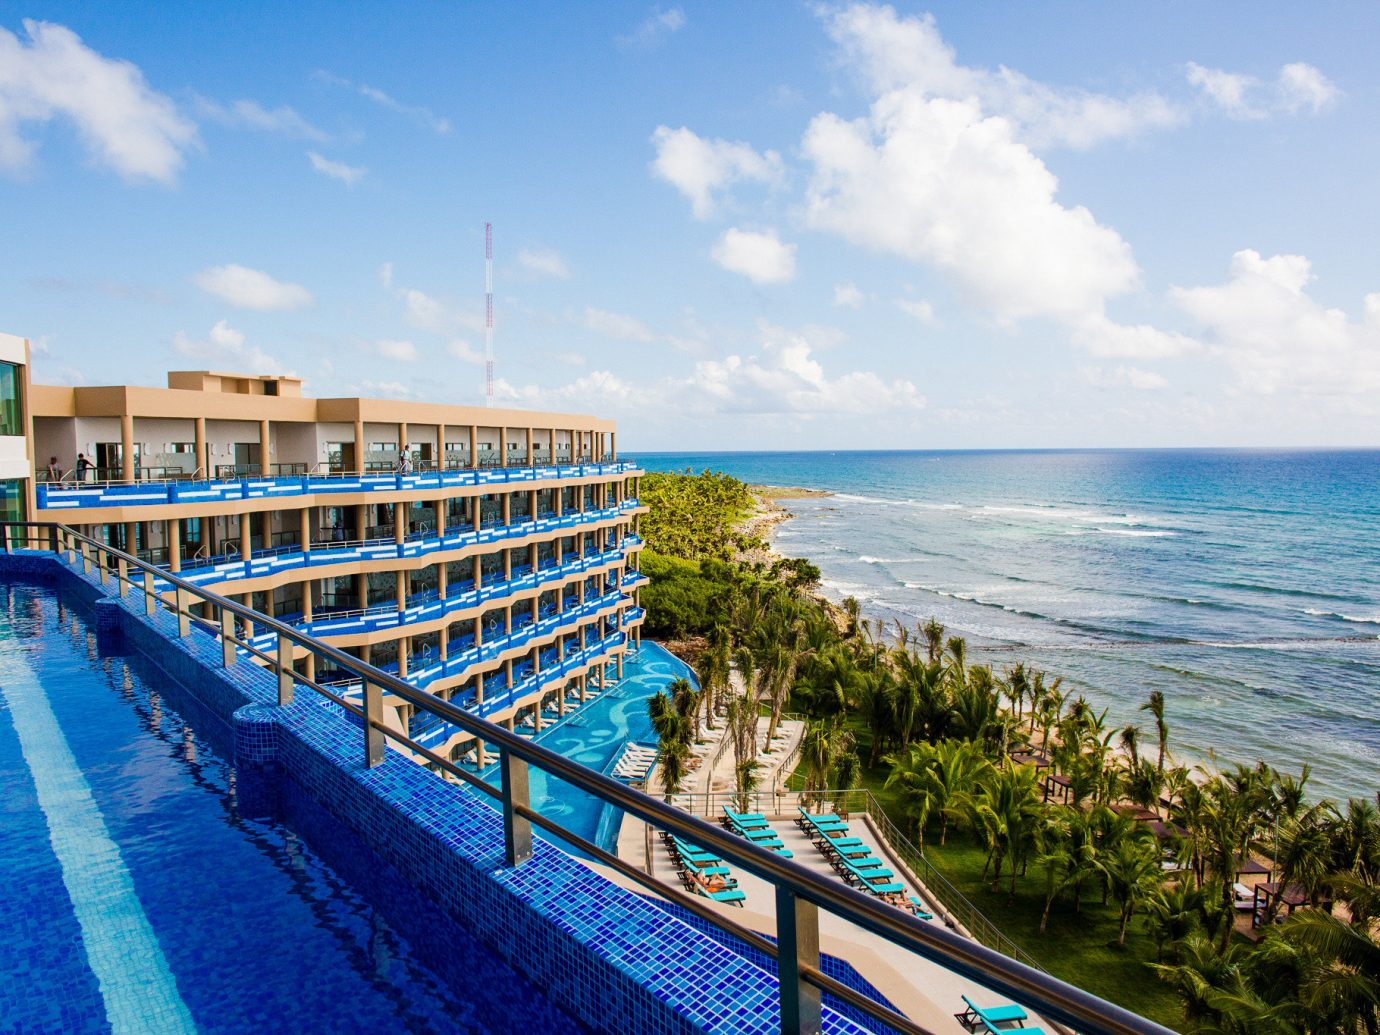 All-inclusive All-Inclusive Resorts Mexico Riviera Maya, Mexico Sea Resort sky condominium leisure vacation Coast Ocean shore real estate tourism swimming pool horizon resort town water bay Beach